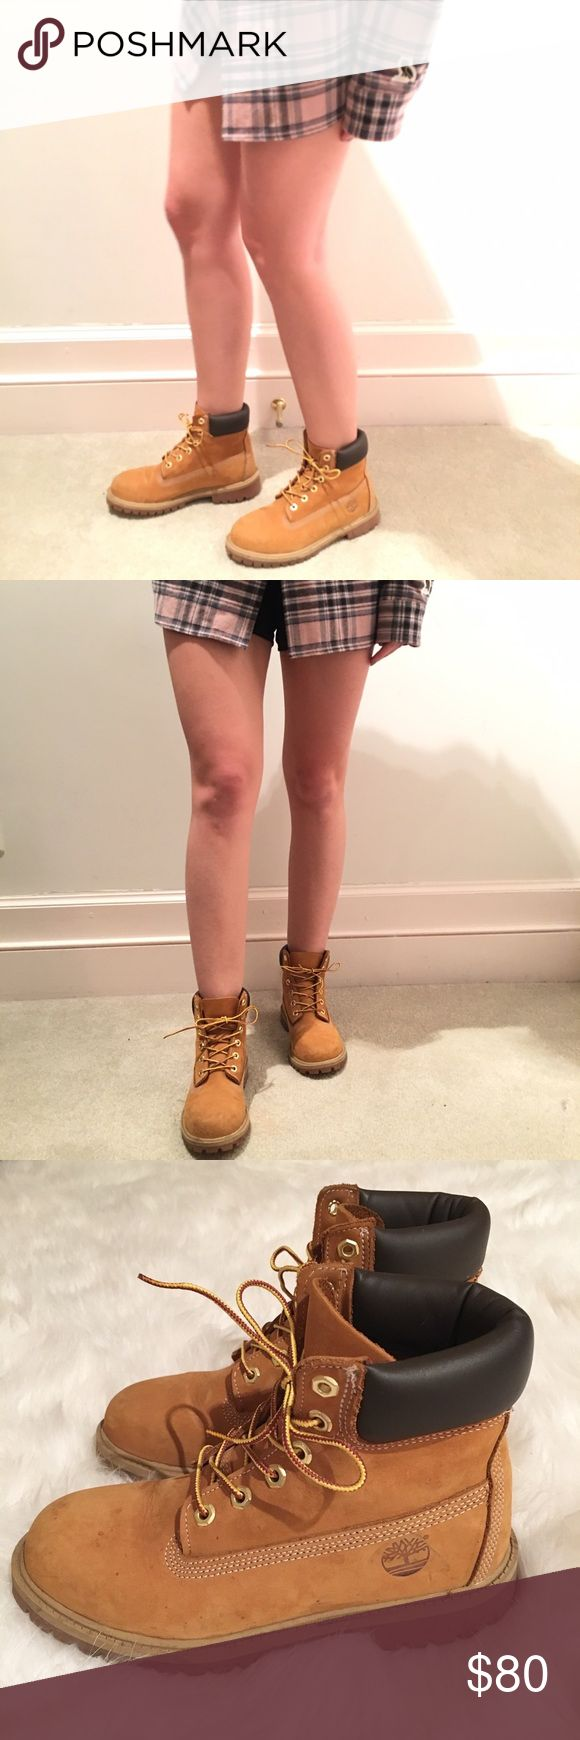 Classic 6-inch Timberland Nubuck Boots Gently Worn. Classic 6-inch Timbs. Original Nubuck color. Size Women's 7. Men's 5. Very durable, warm and comfortable. Price negotiable. Timberland Shoes Combat & Moto Boots